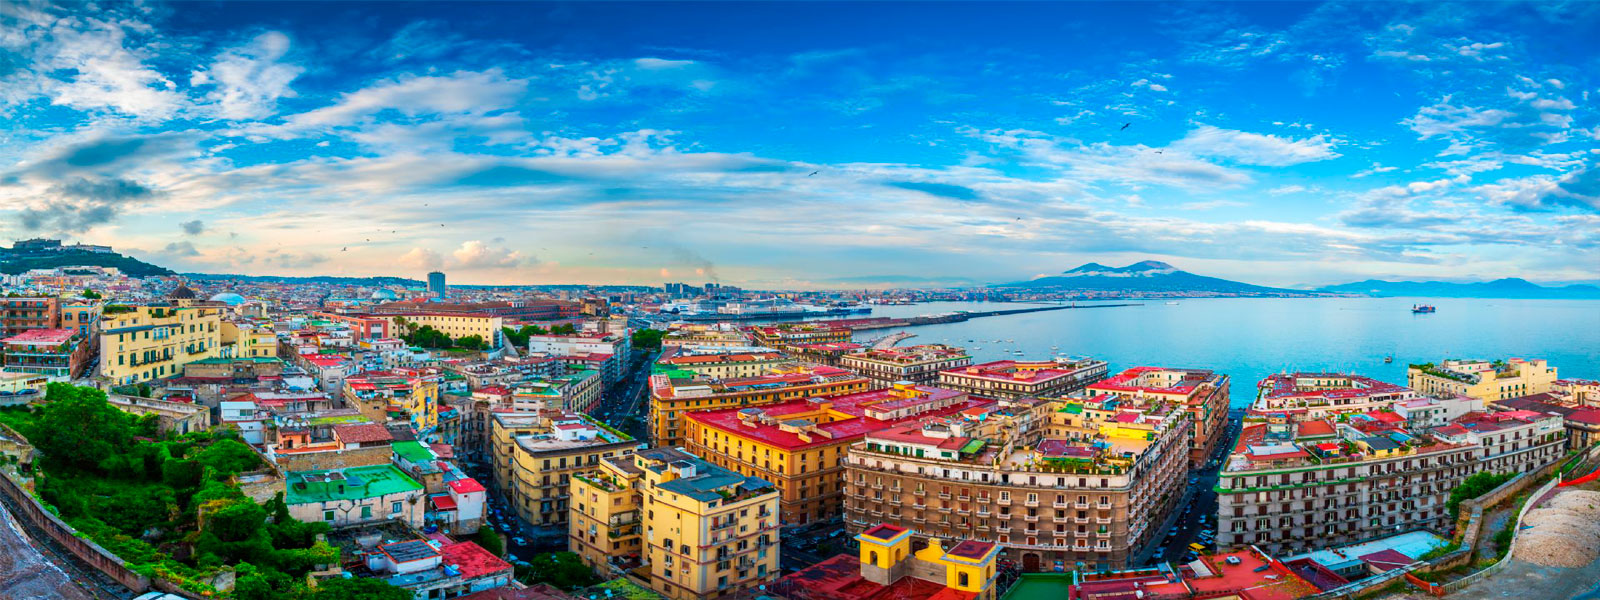 Transfer Fiumicino Airport - Naples